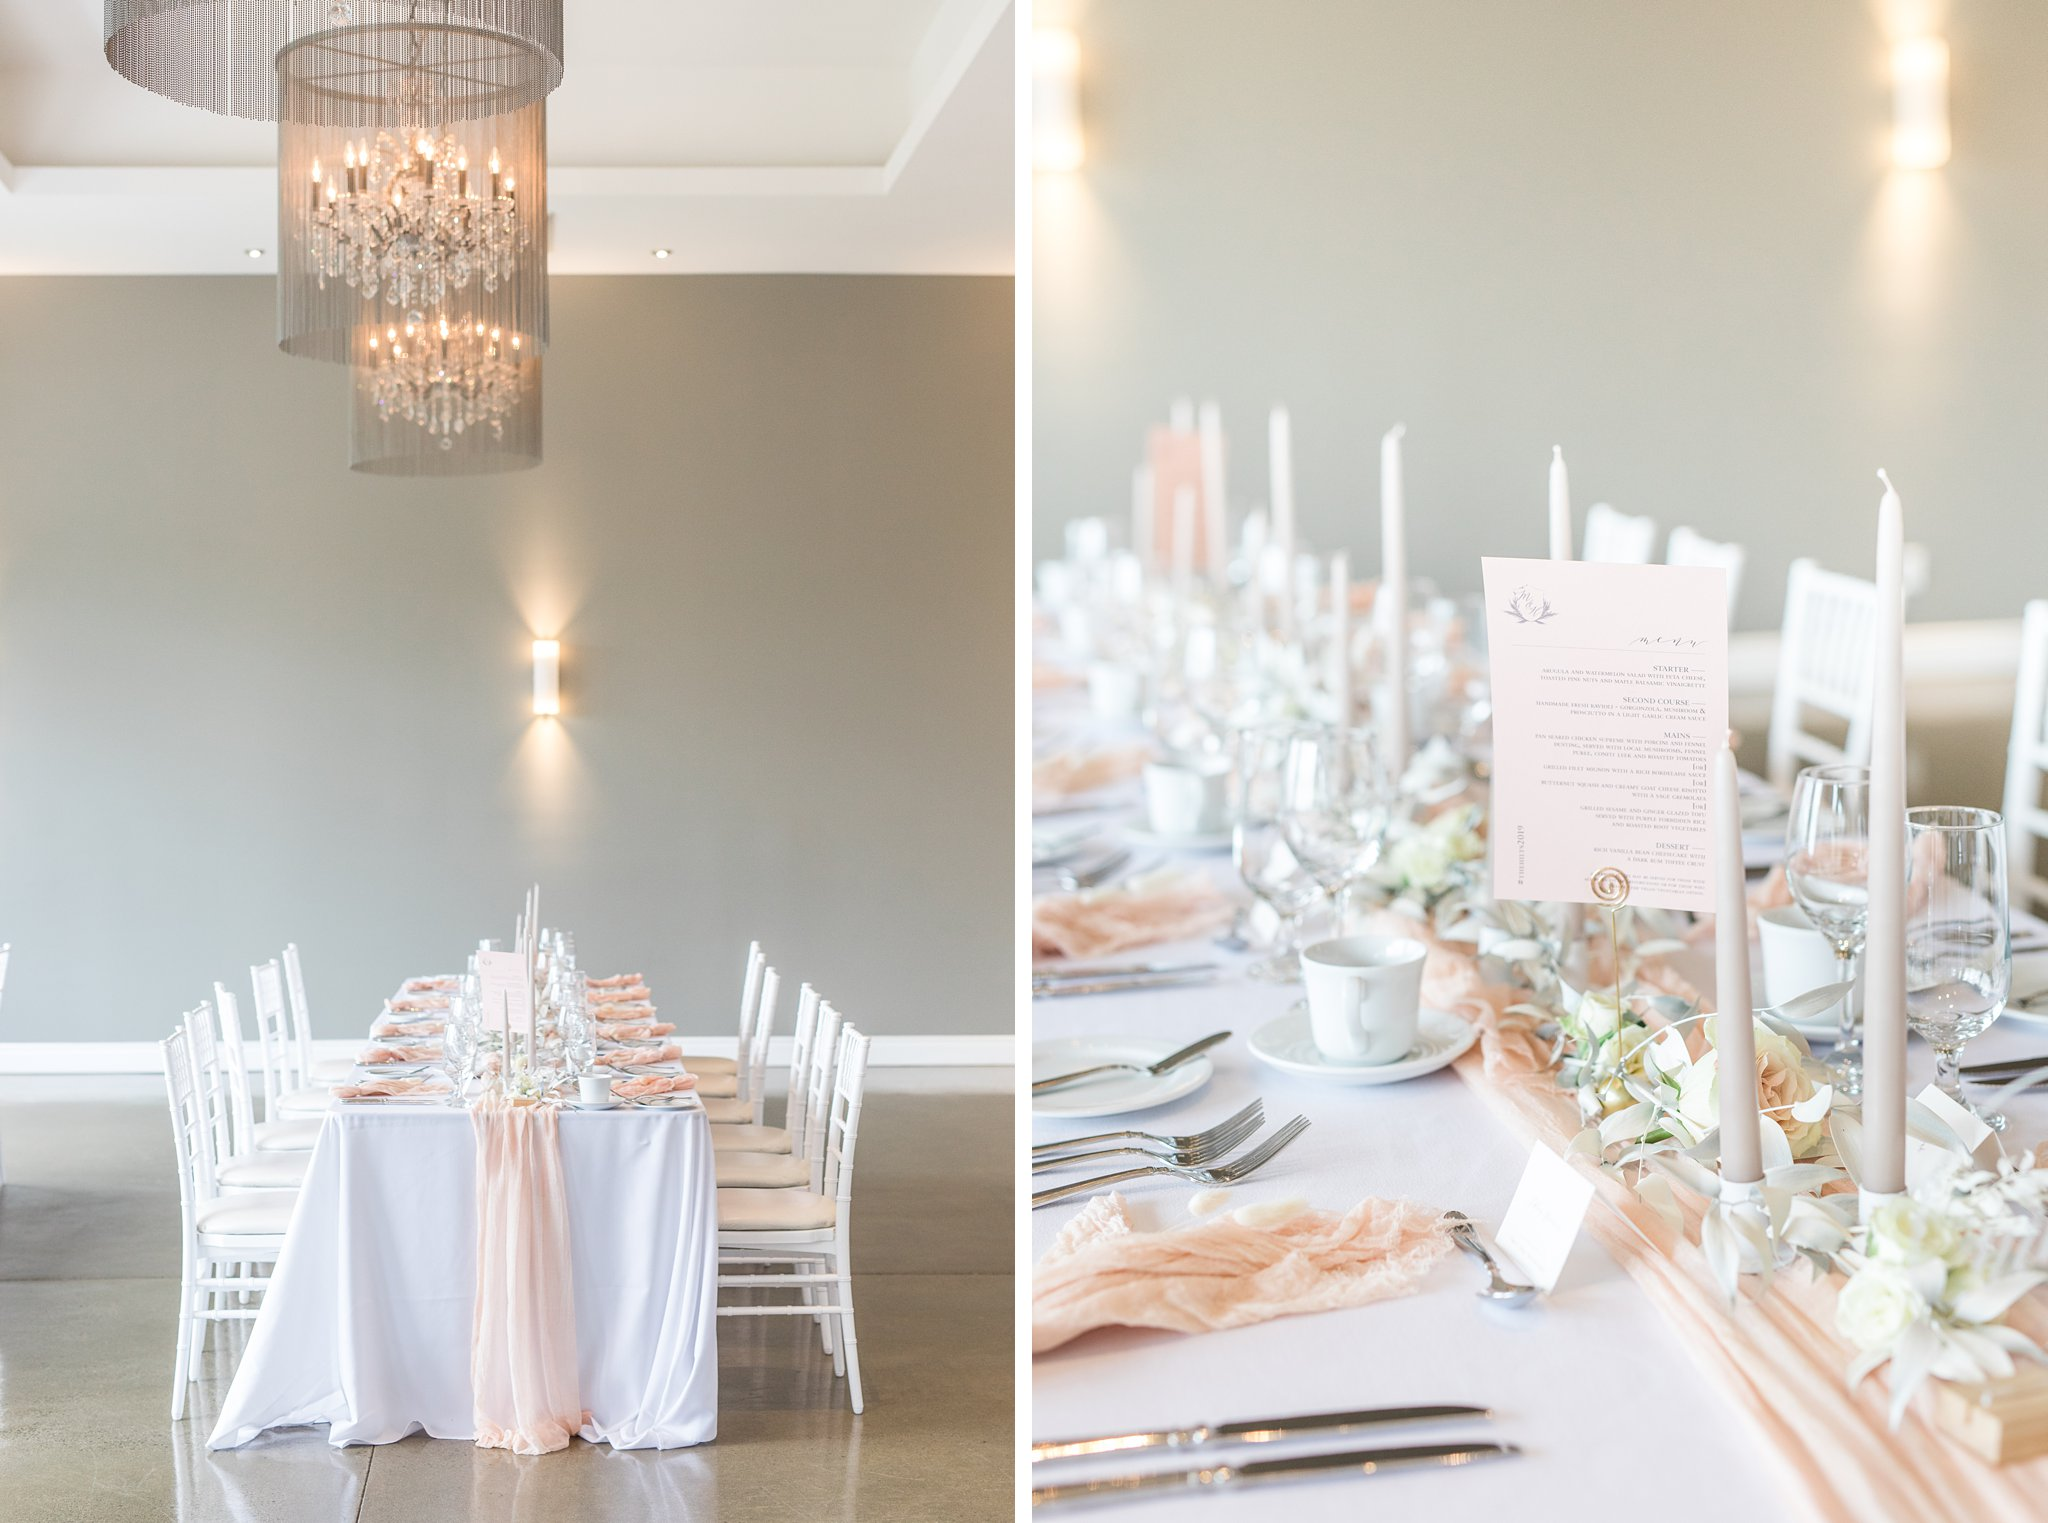 Custom menu signage, La Fabere, Tall candlesticks, table runner, muted colours, Wakefield wedding photos, Le Belvedere